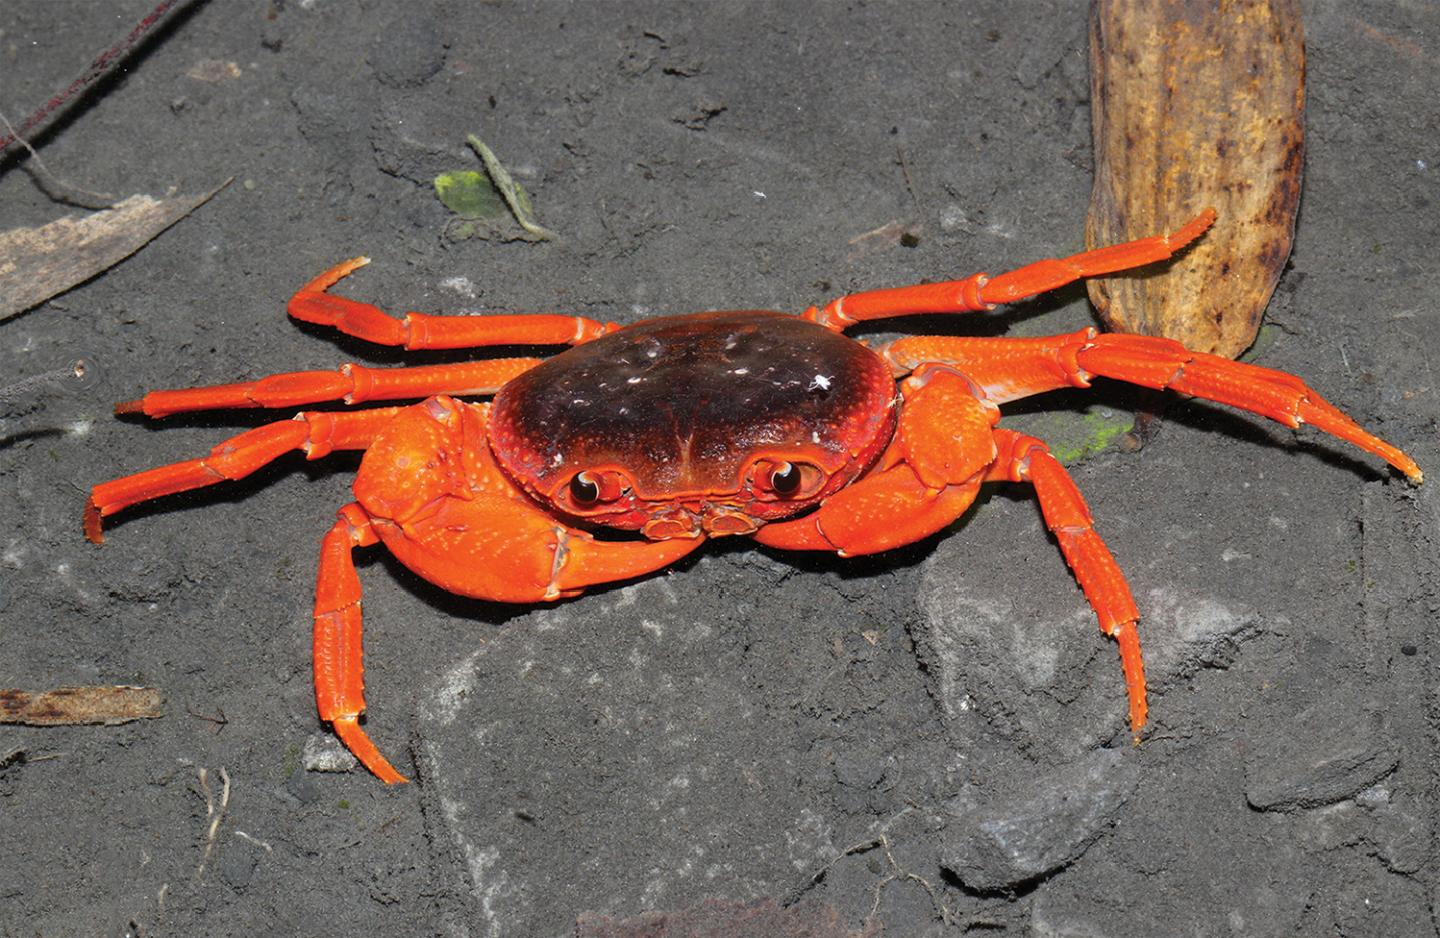 New crab species discovered in Chinese fish market